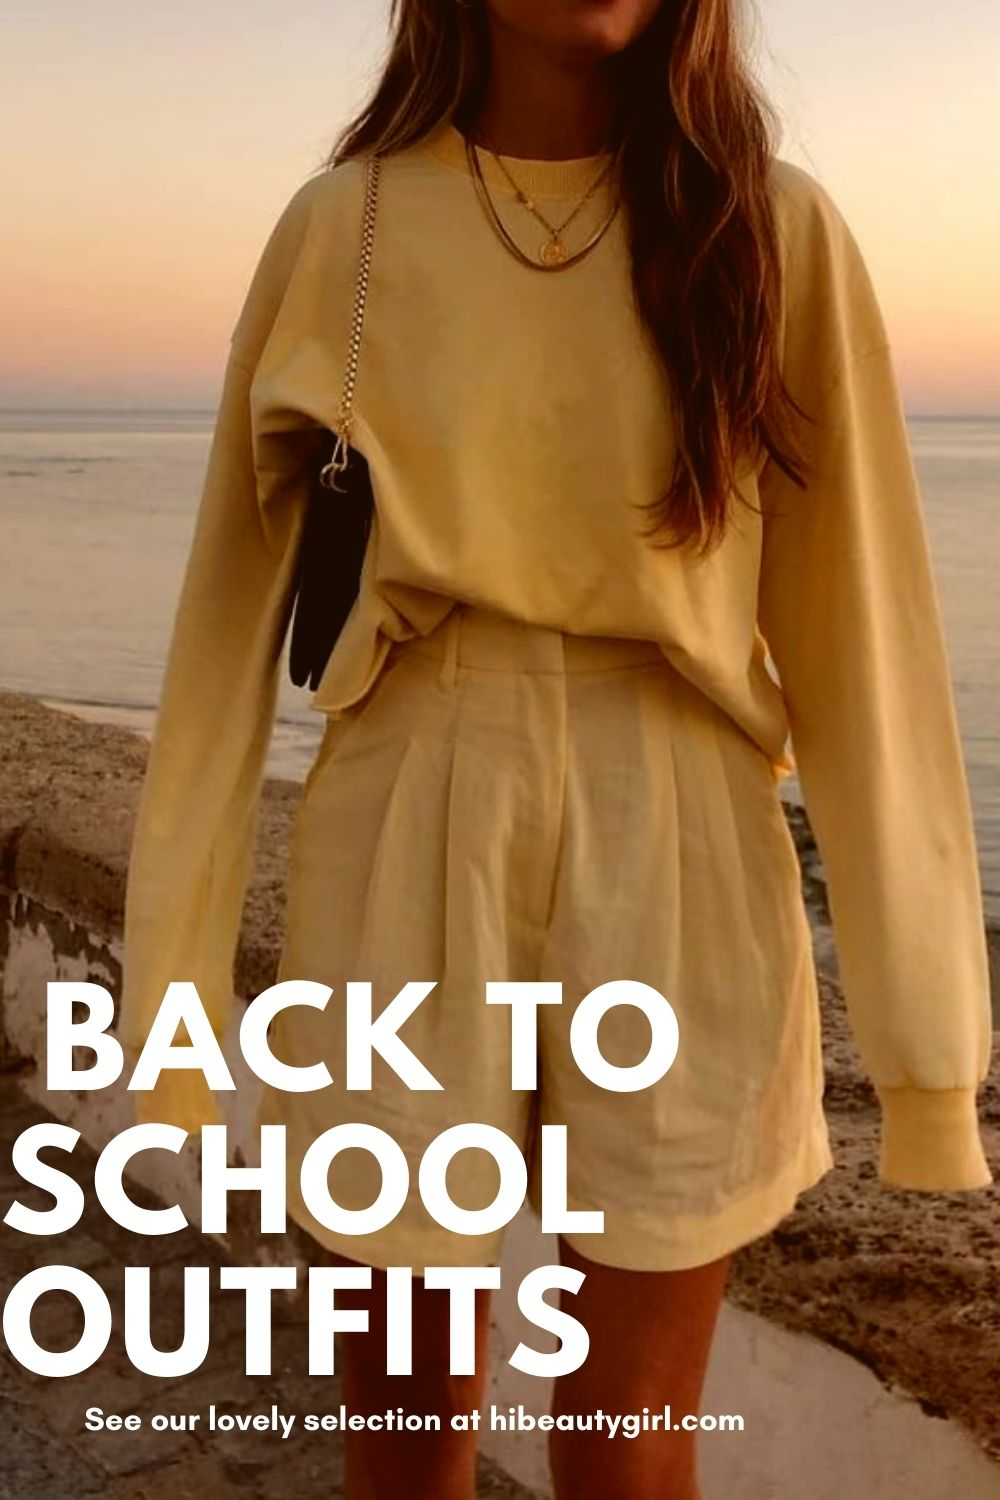 Back to School Outfits Guide 2021 For Girls In September